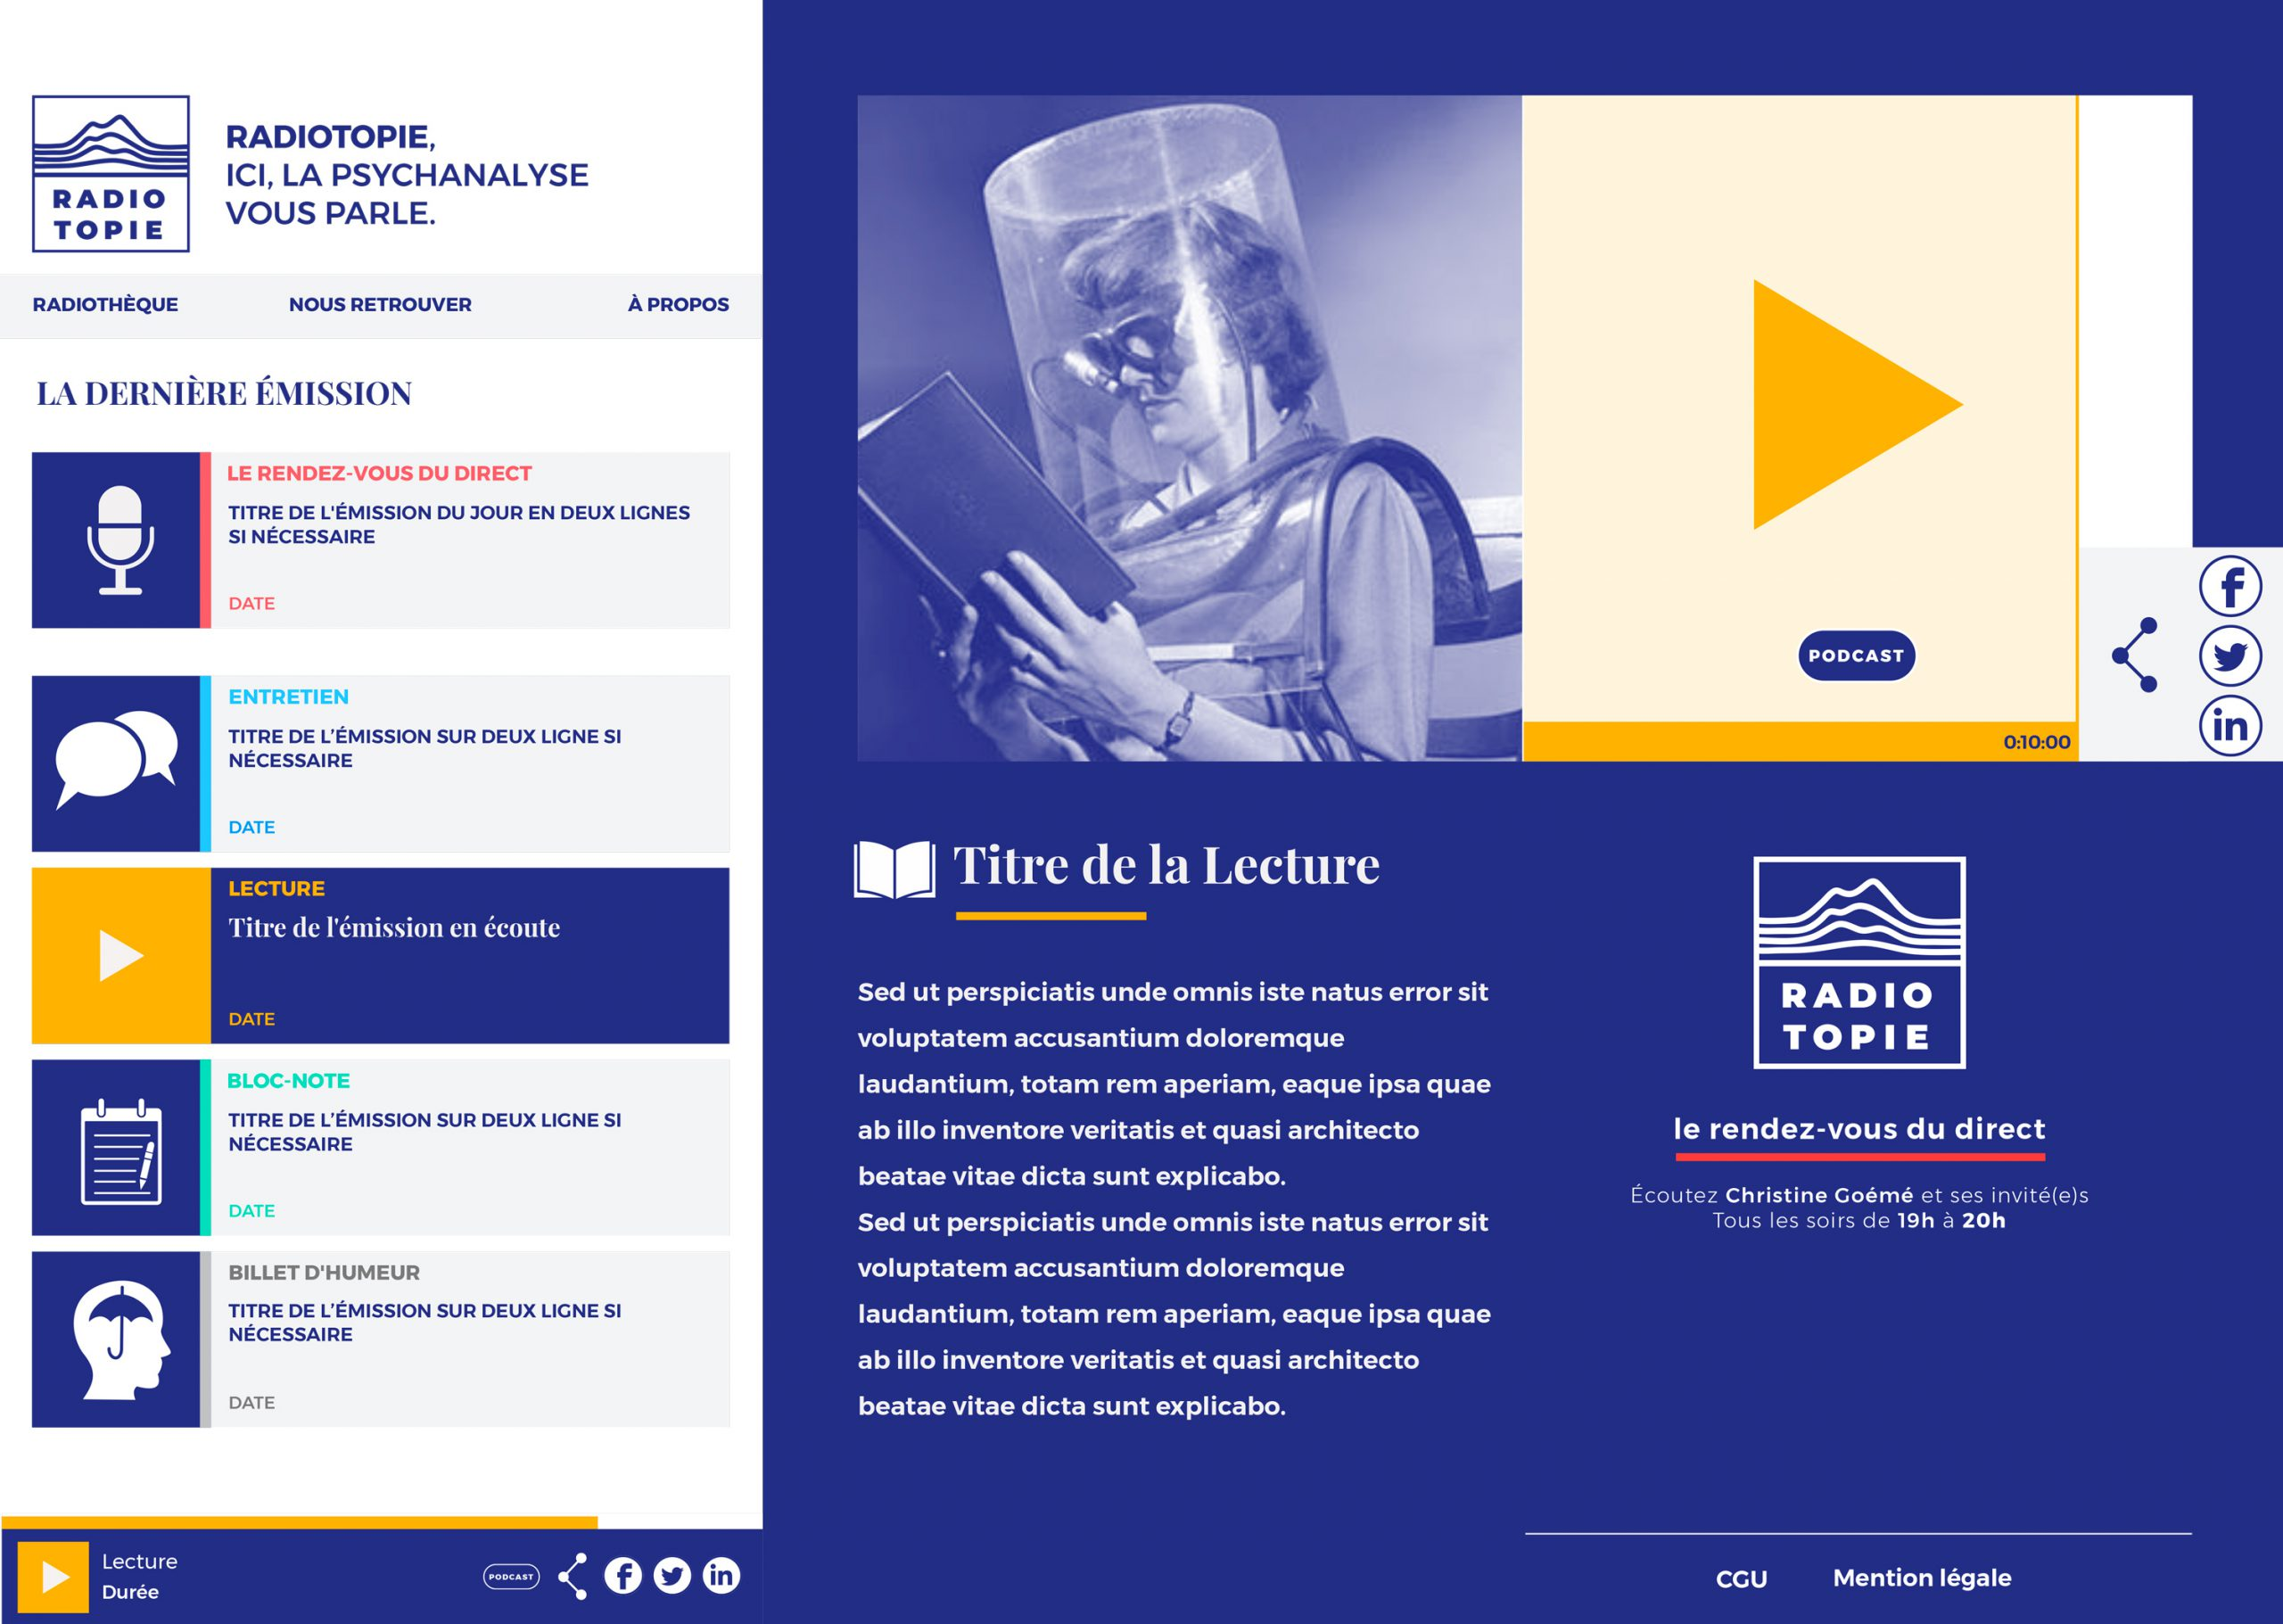 RADIOTOPIE PAGE HOME / ACCUEIL